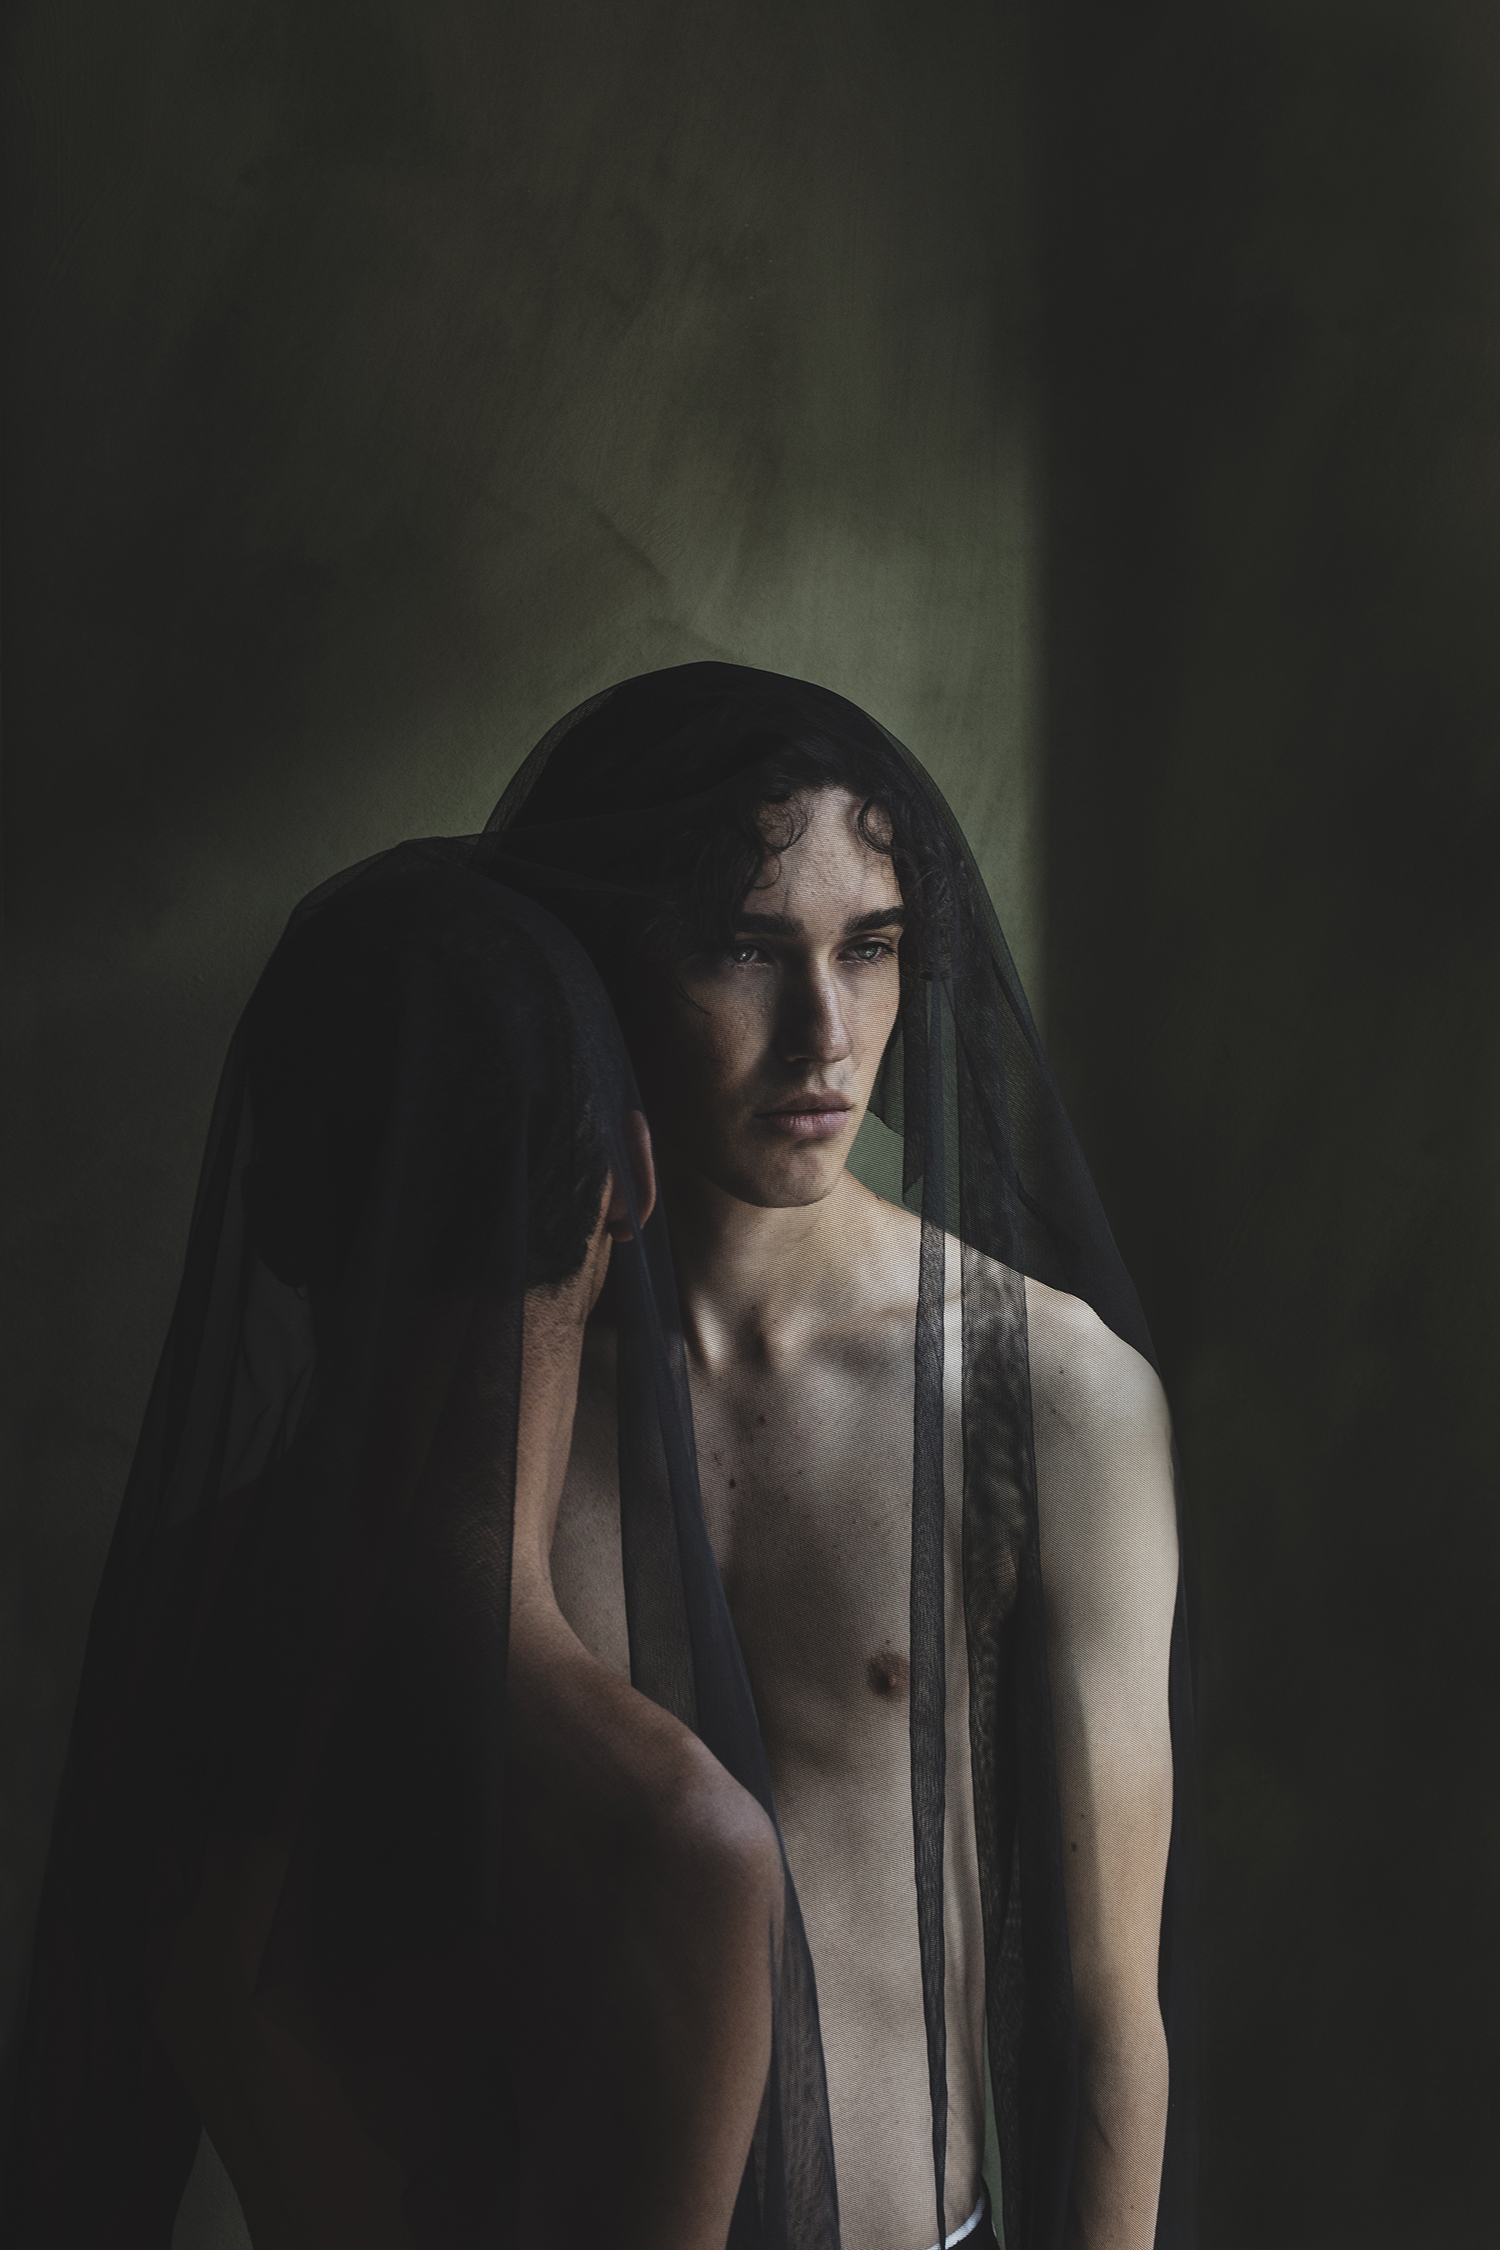 Under Veil - queer art series rite